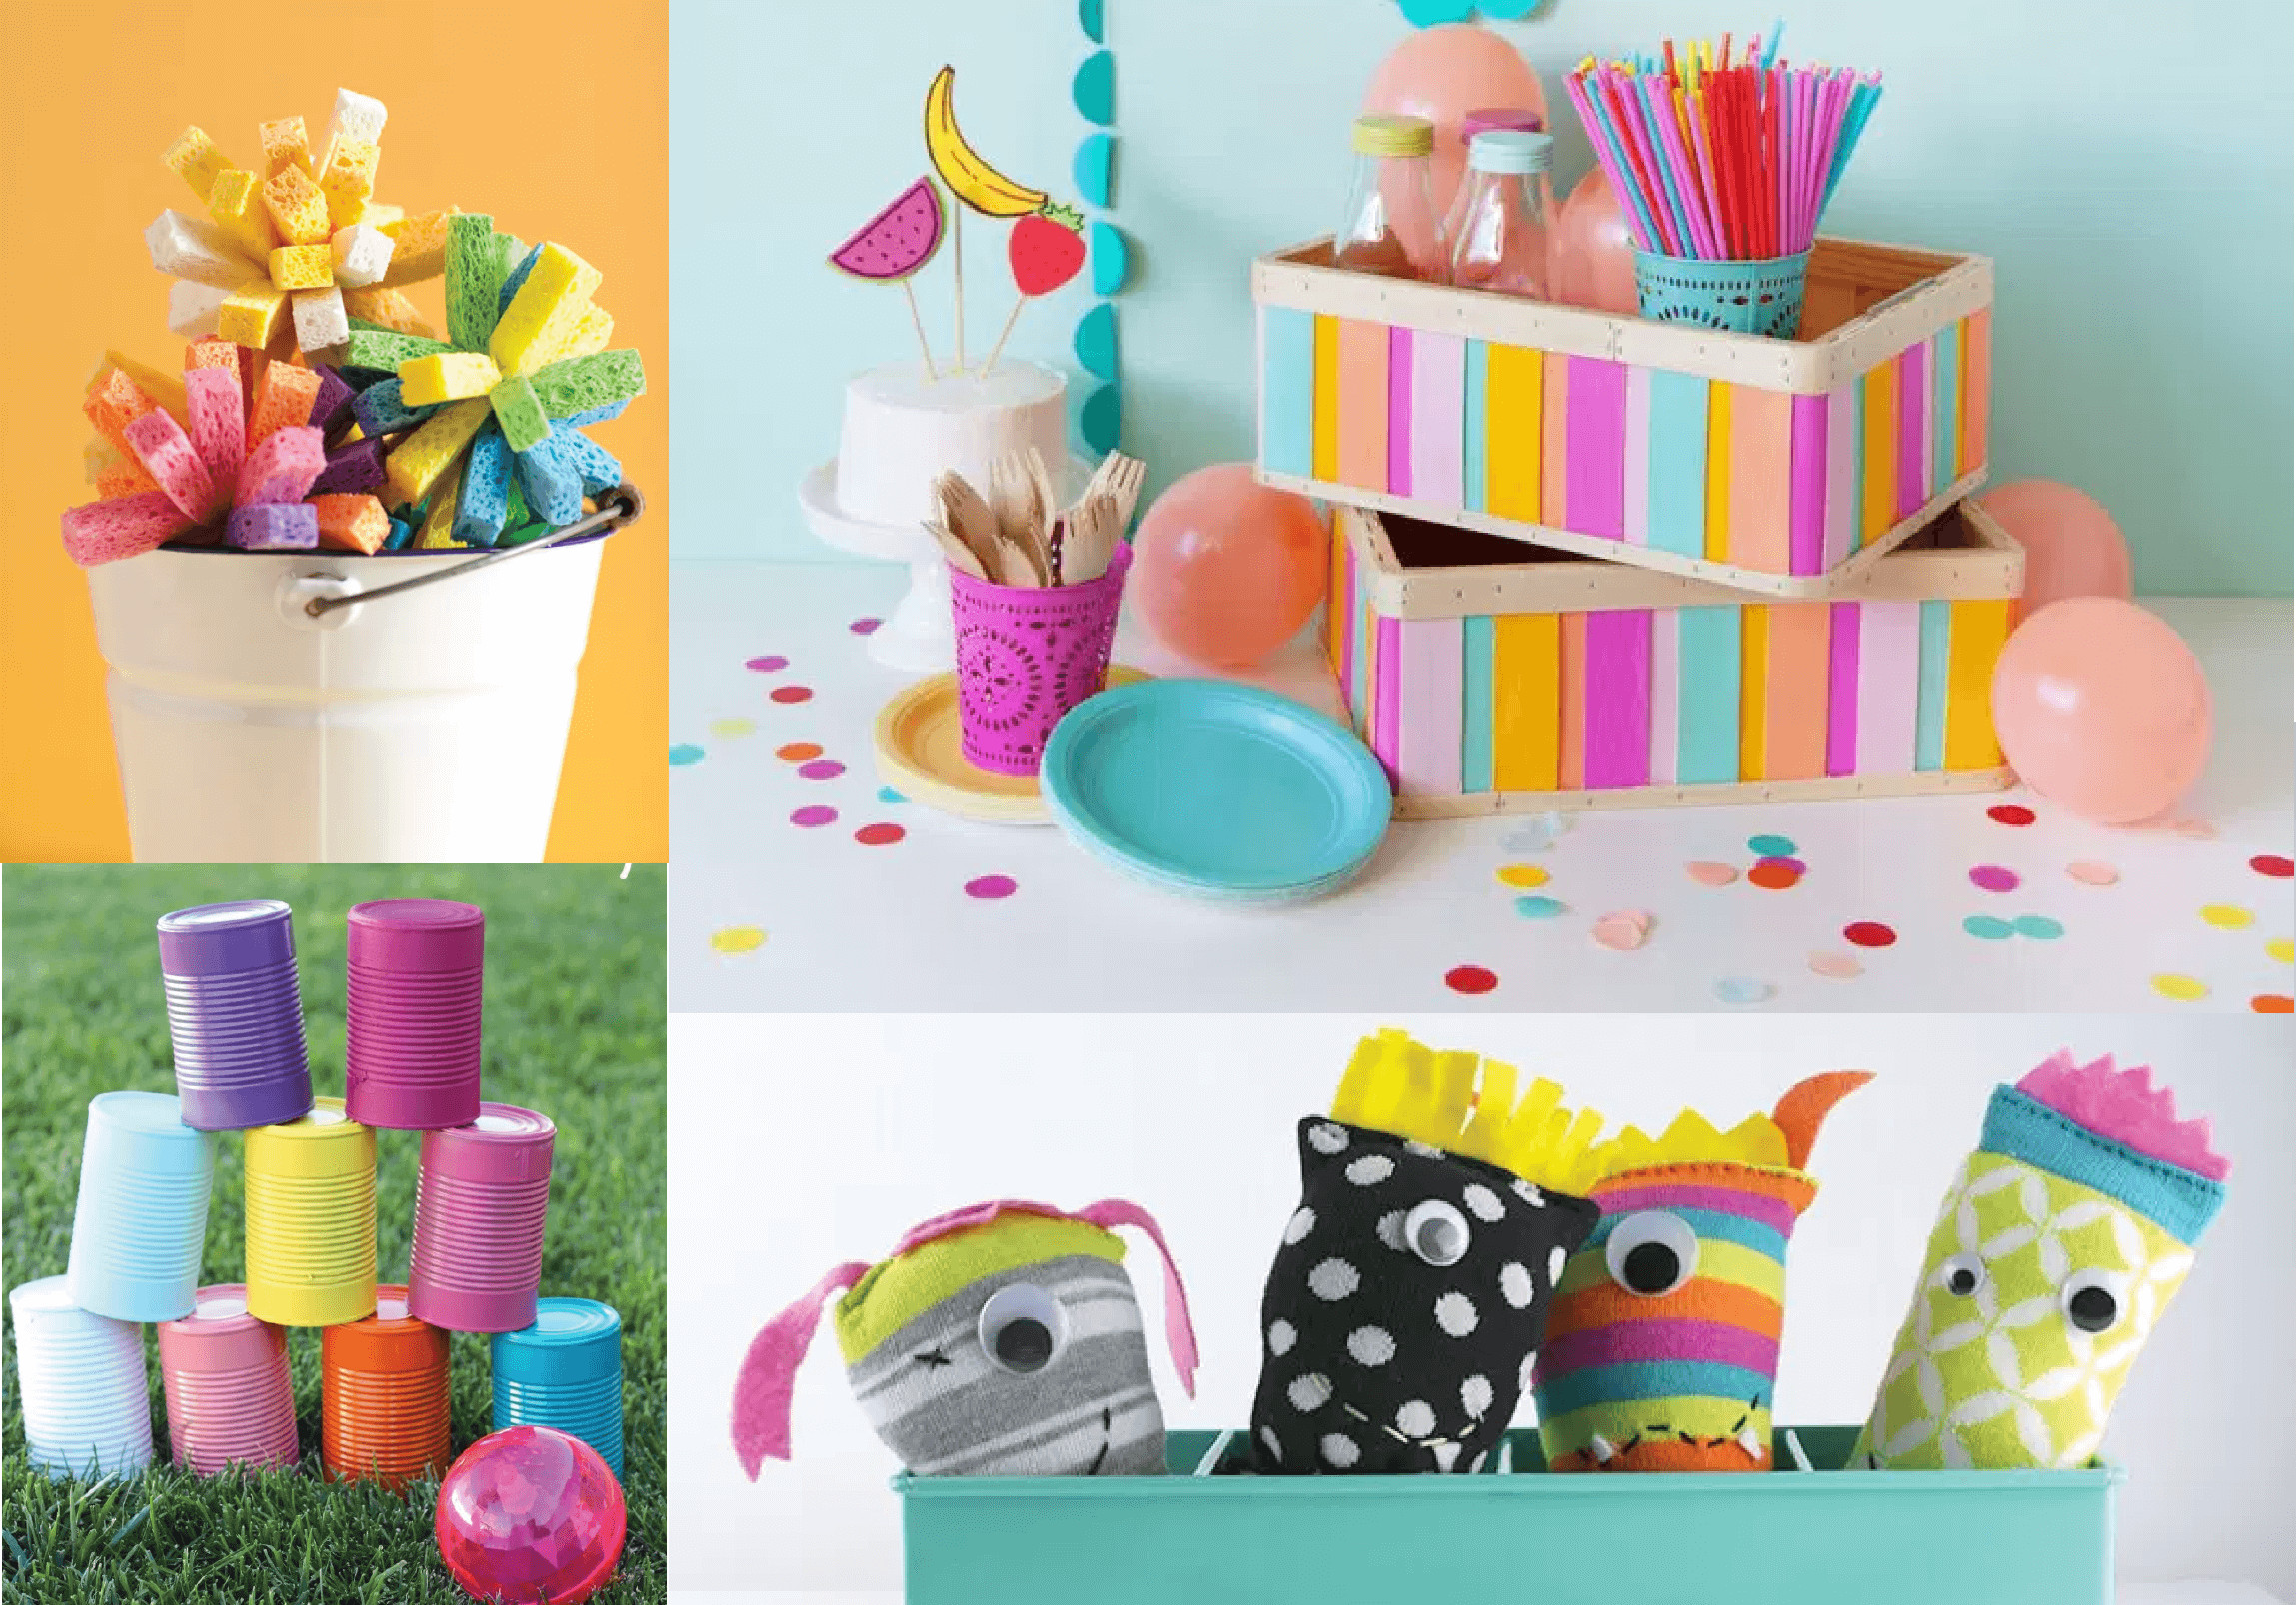 Best ideas about Easy DIY Projects For Kids . Save or Pin 31 Easy DIY Craft Ideas For Kids How To Have Fun With Now.